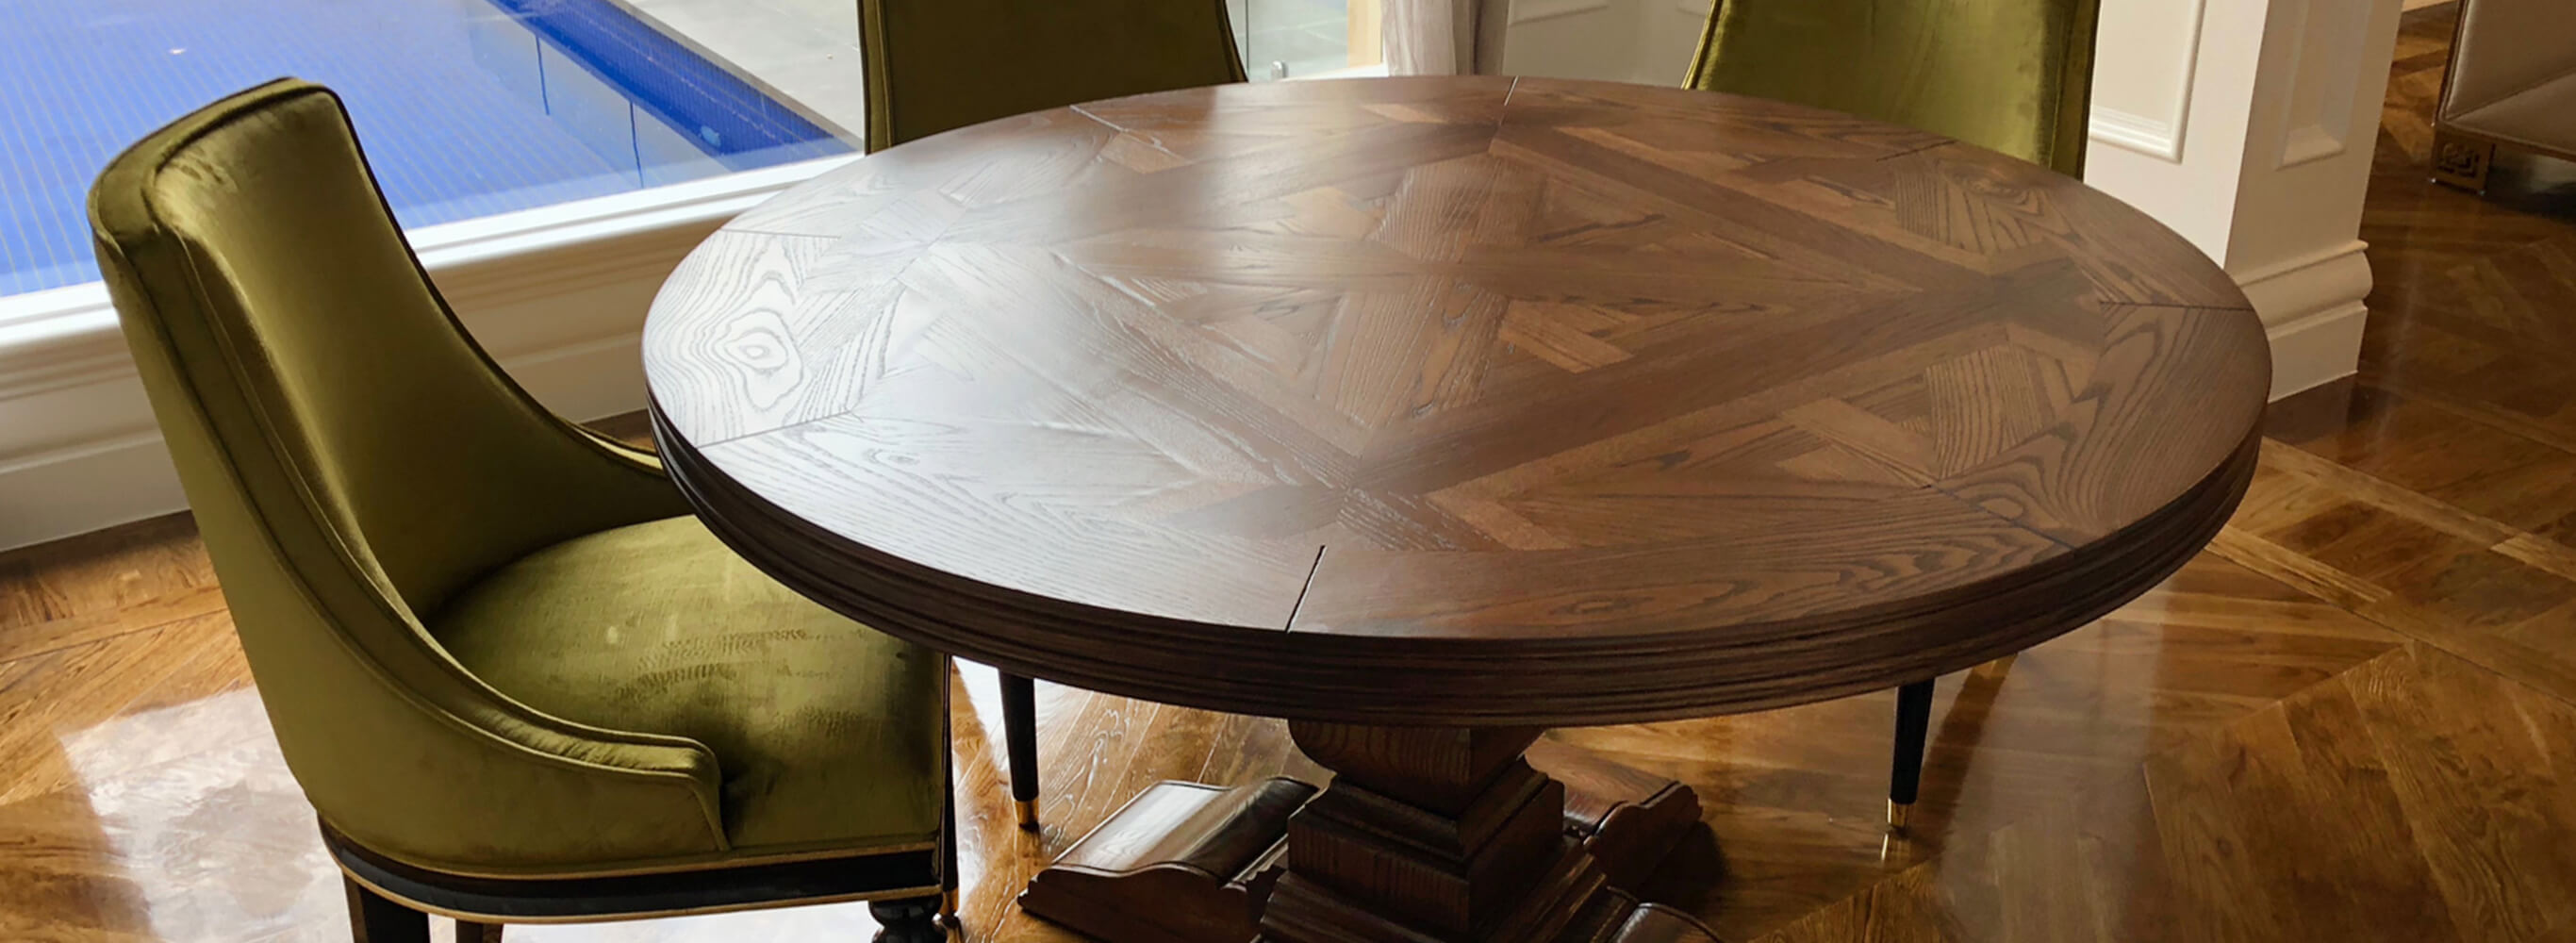 FrenchTables_Round_Tables_banner